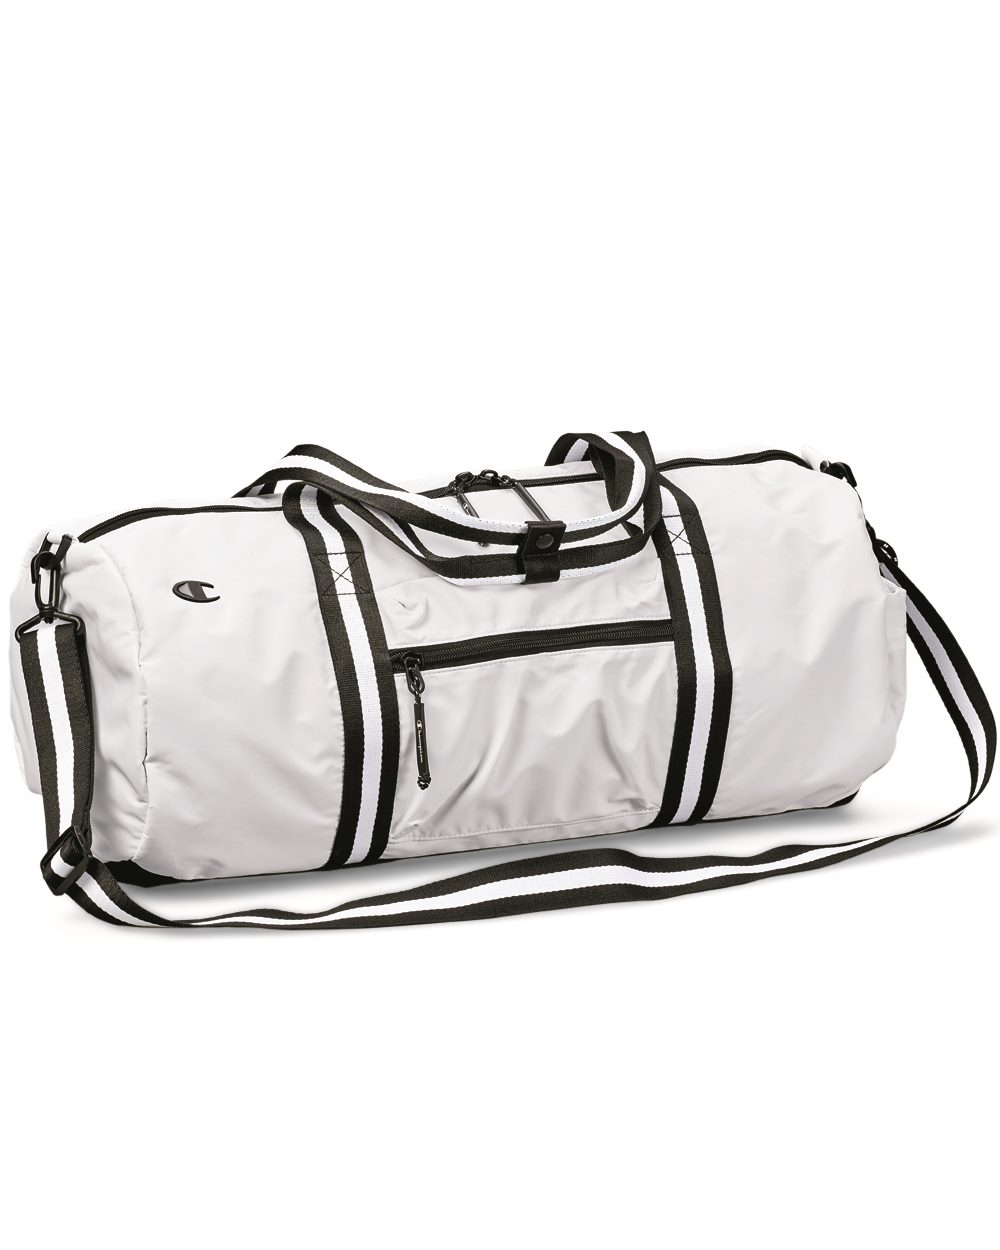 Champion CS2003 - 44L Branded Duffel Bag